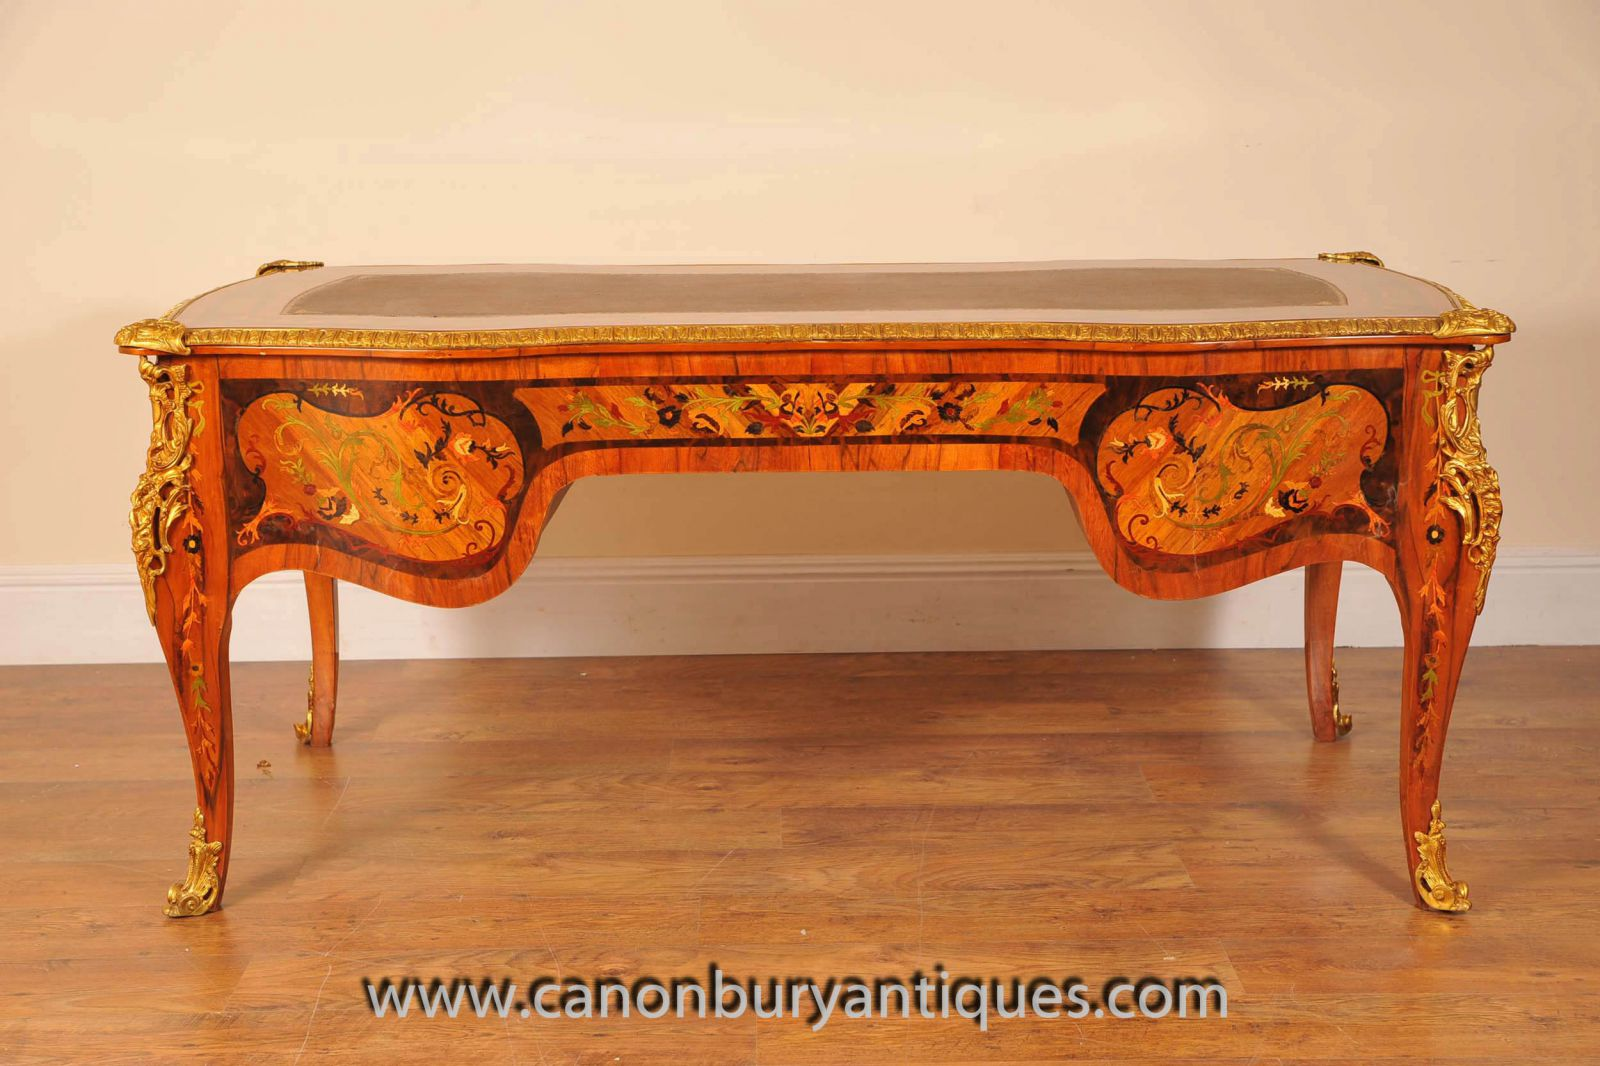 Louis XV Bureau Plat Desk Writing Table www_canonburyantiques_com (9)-2-2